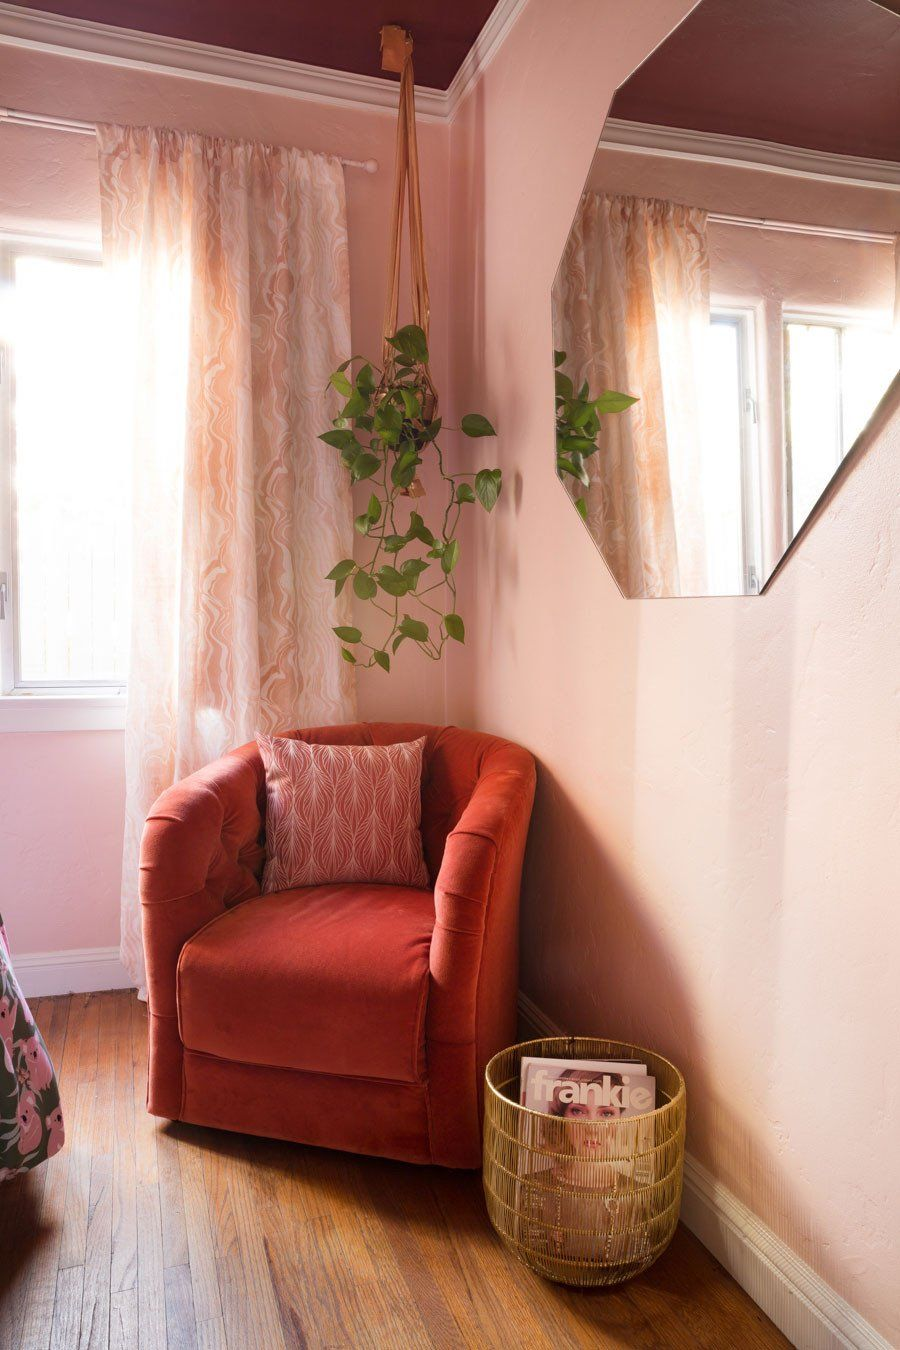 coral armchair with soft pink throw pillow soft pink walls soft pink window curtains wood floors